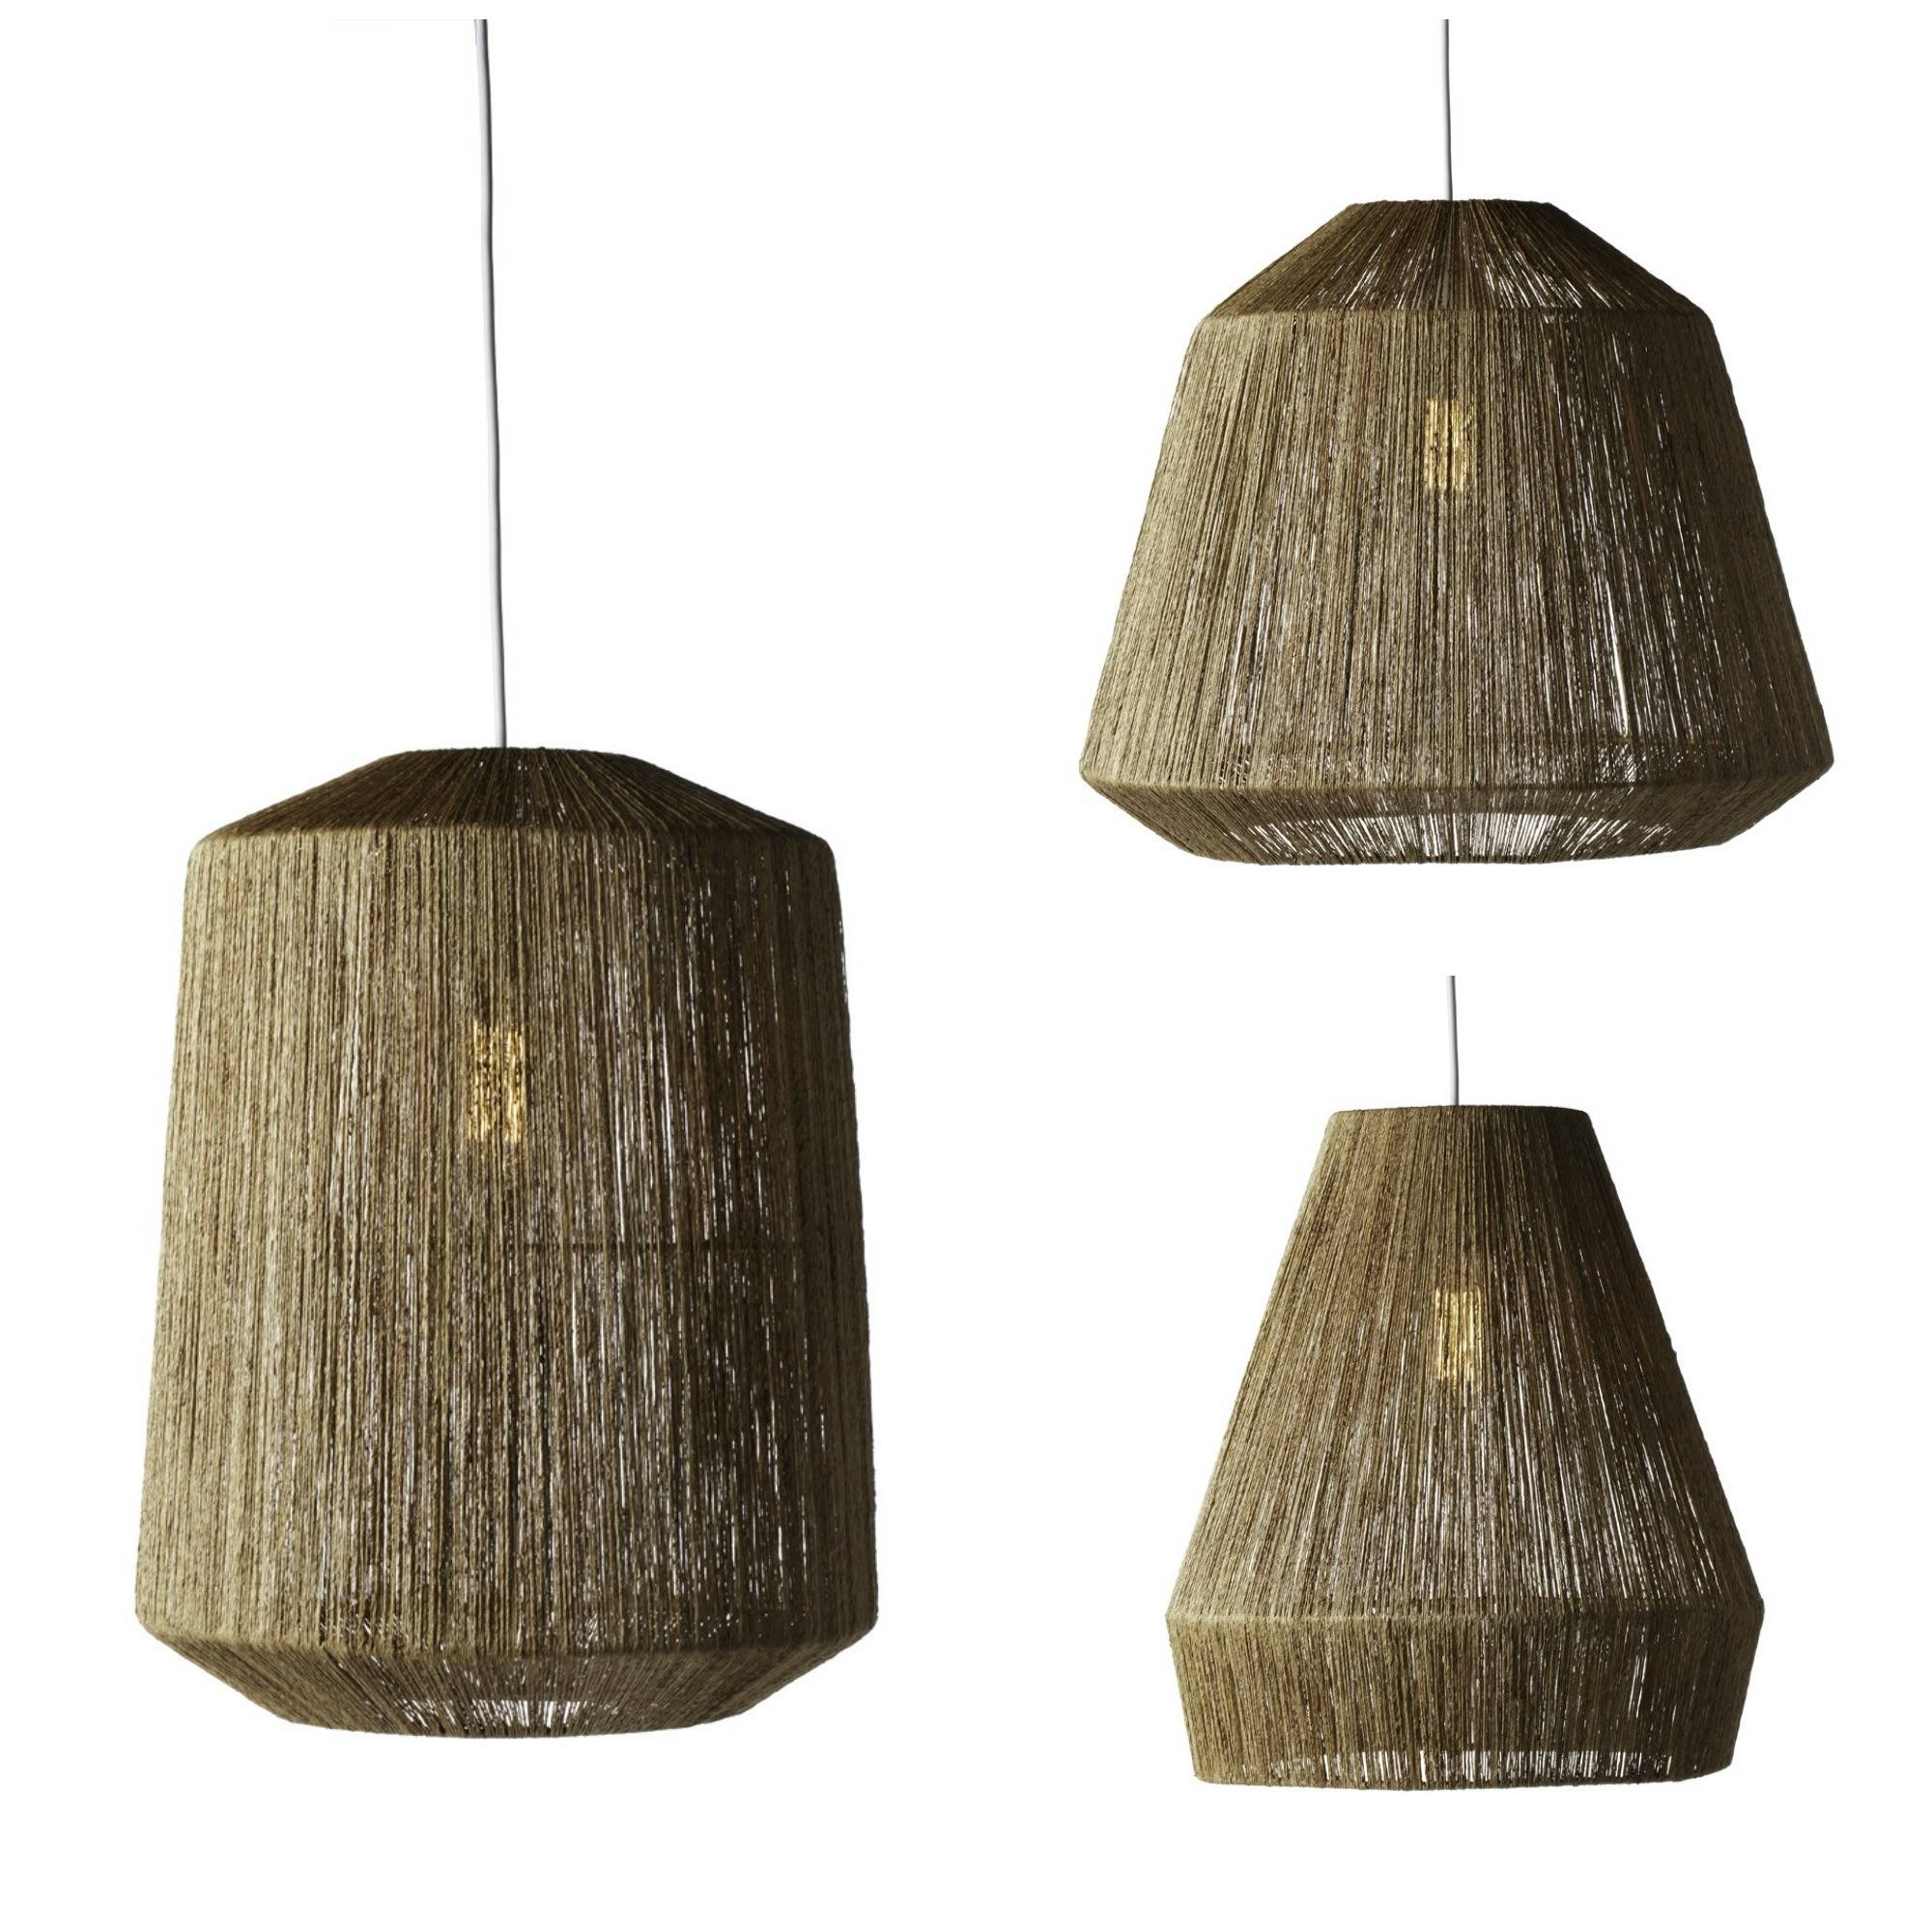 Anthropologie Bungalow Pendant Lamps | Decor Look Alikes with Anthropologie Pendant Lighting (Image 10 of 15)